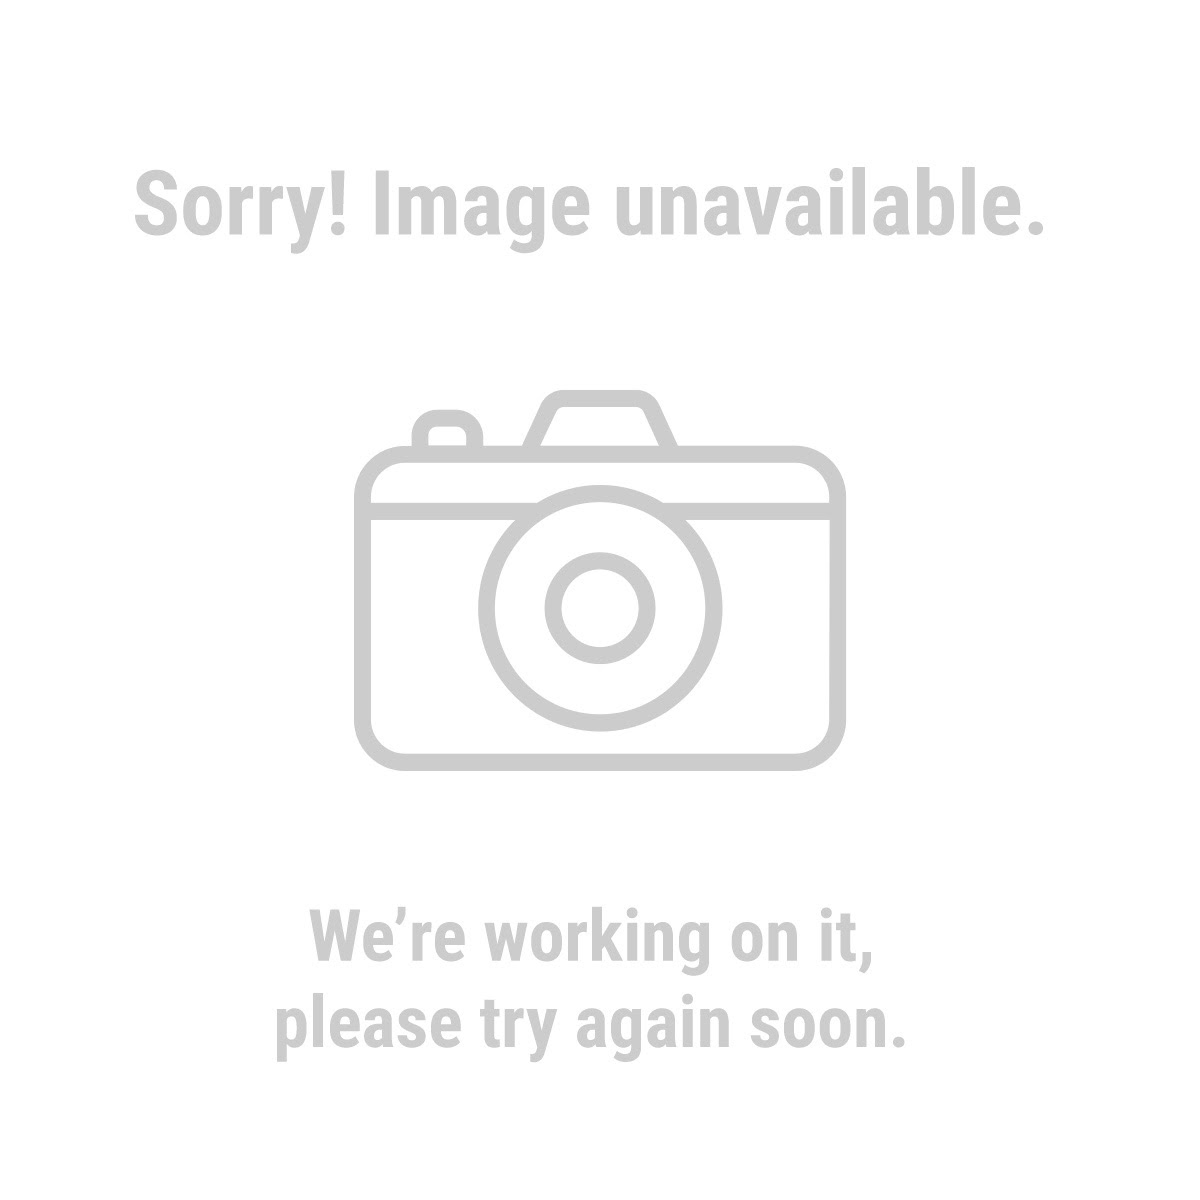 Welding helmets| Off-Topic Discussion forum